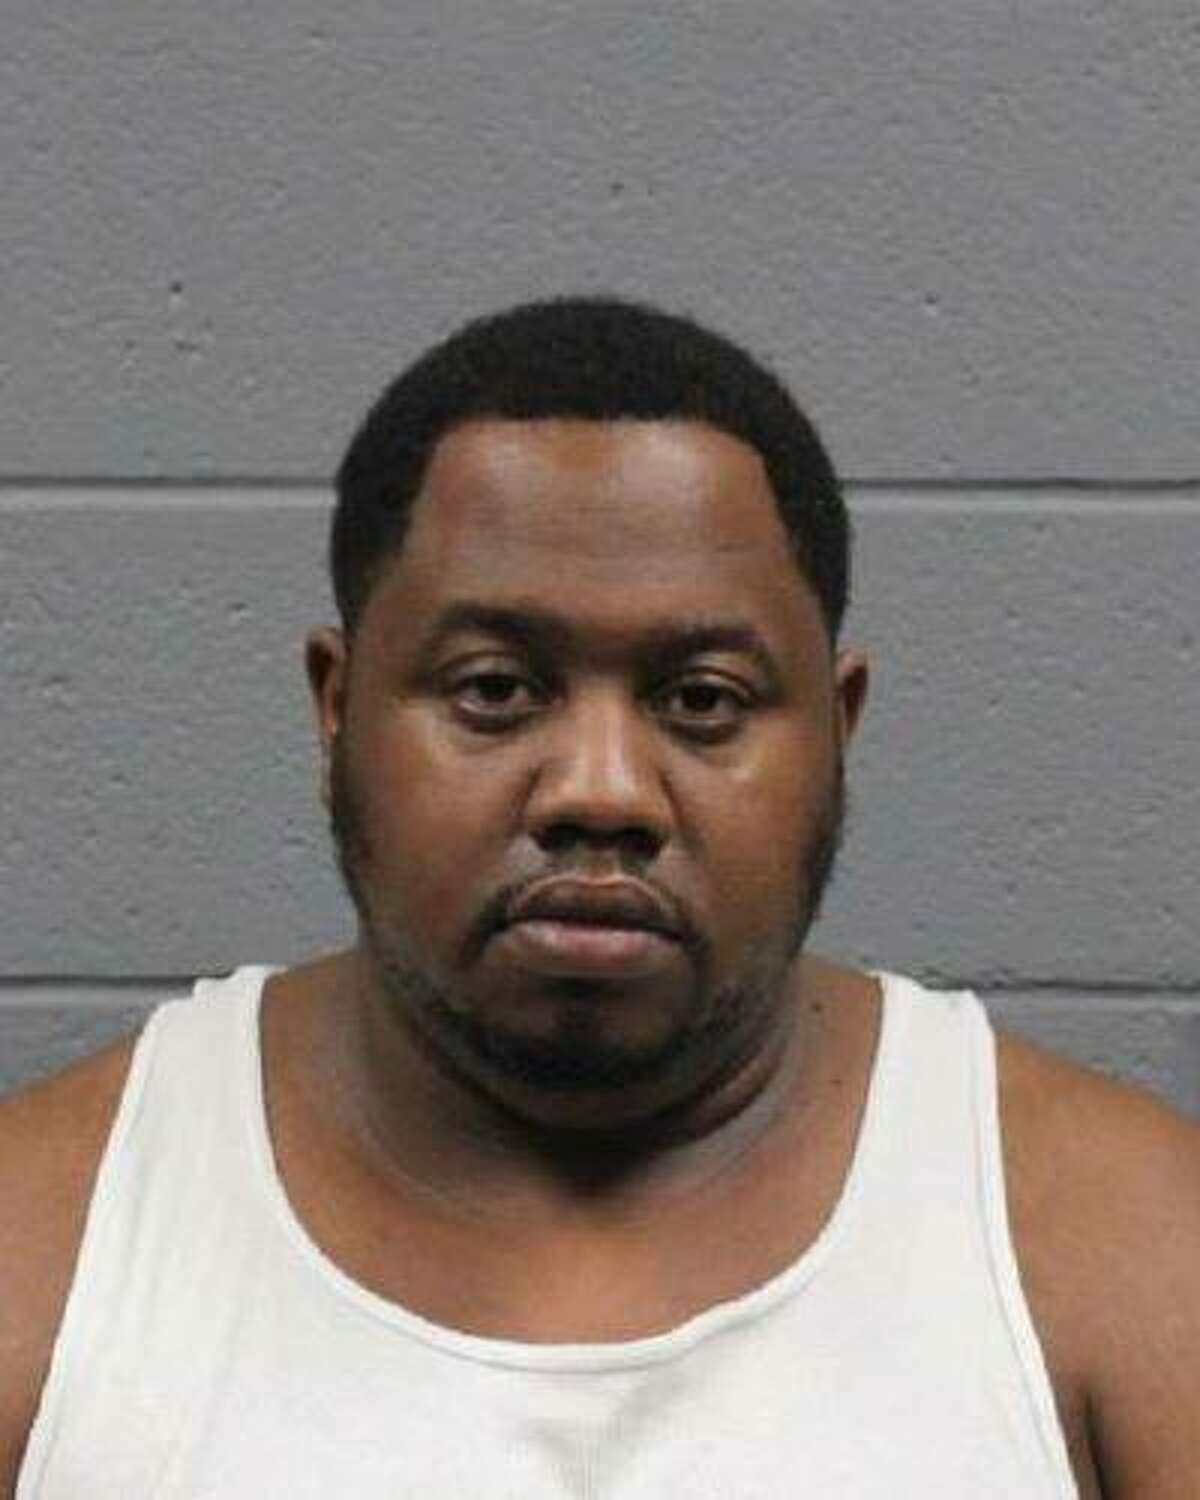 Andre Reed, 29, was arrested Tuesday morning in connection with a homicide that occurred Waterbury in late July.